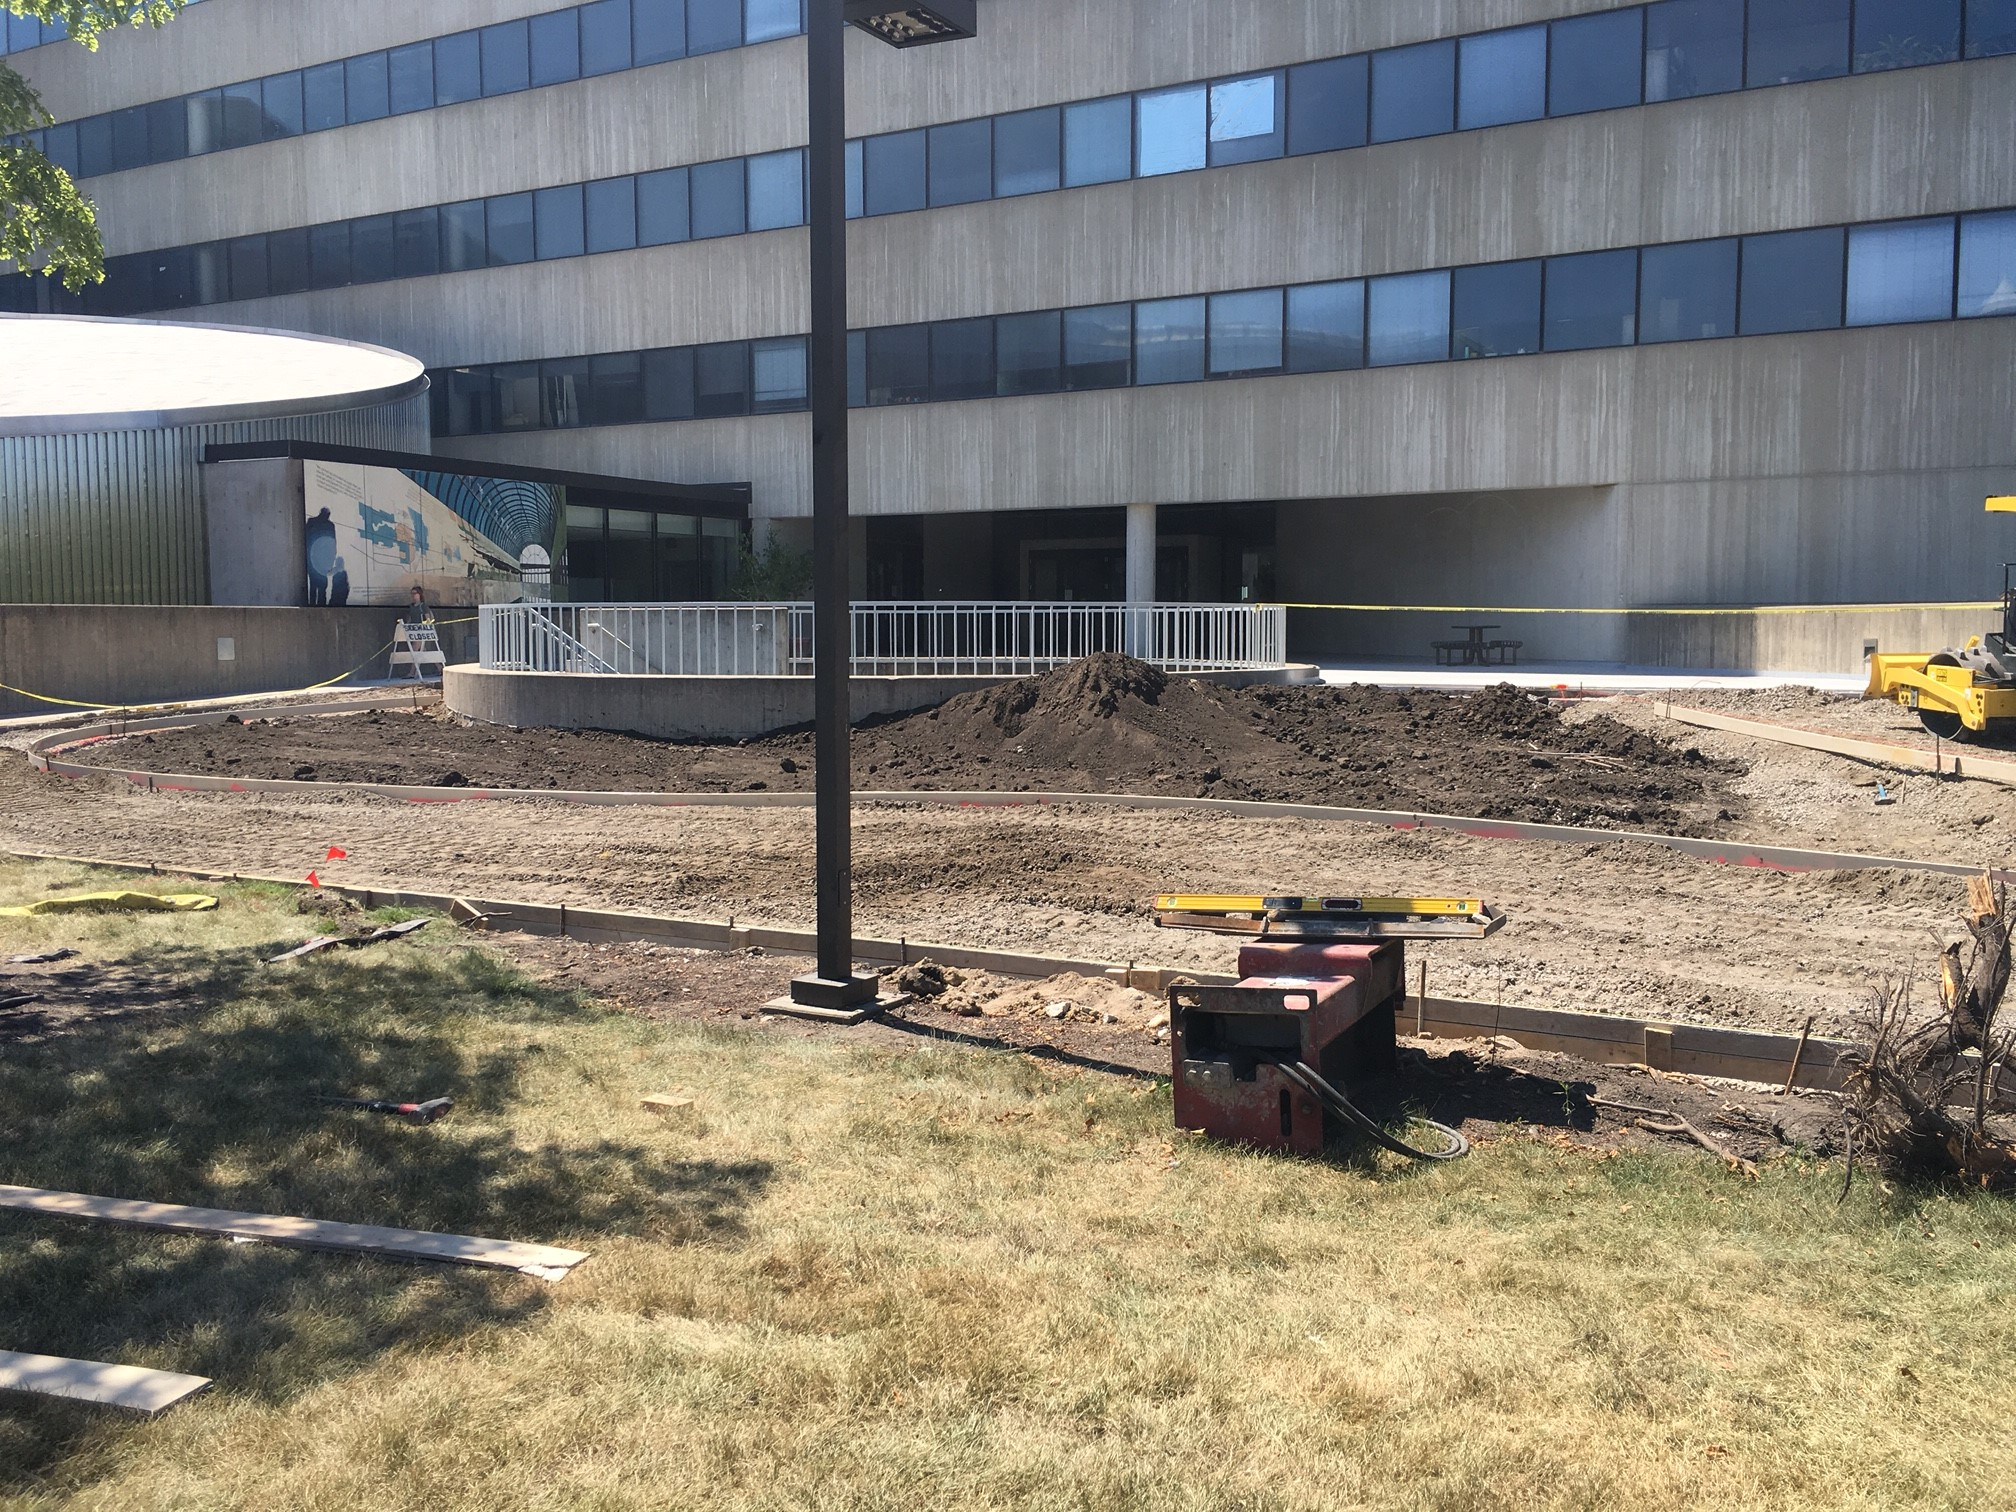 Three mature crabapple trees were removed from the south side of the entrance plaza. These were replaced elsewhere with aspens.